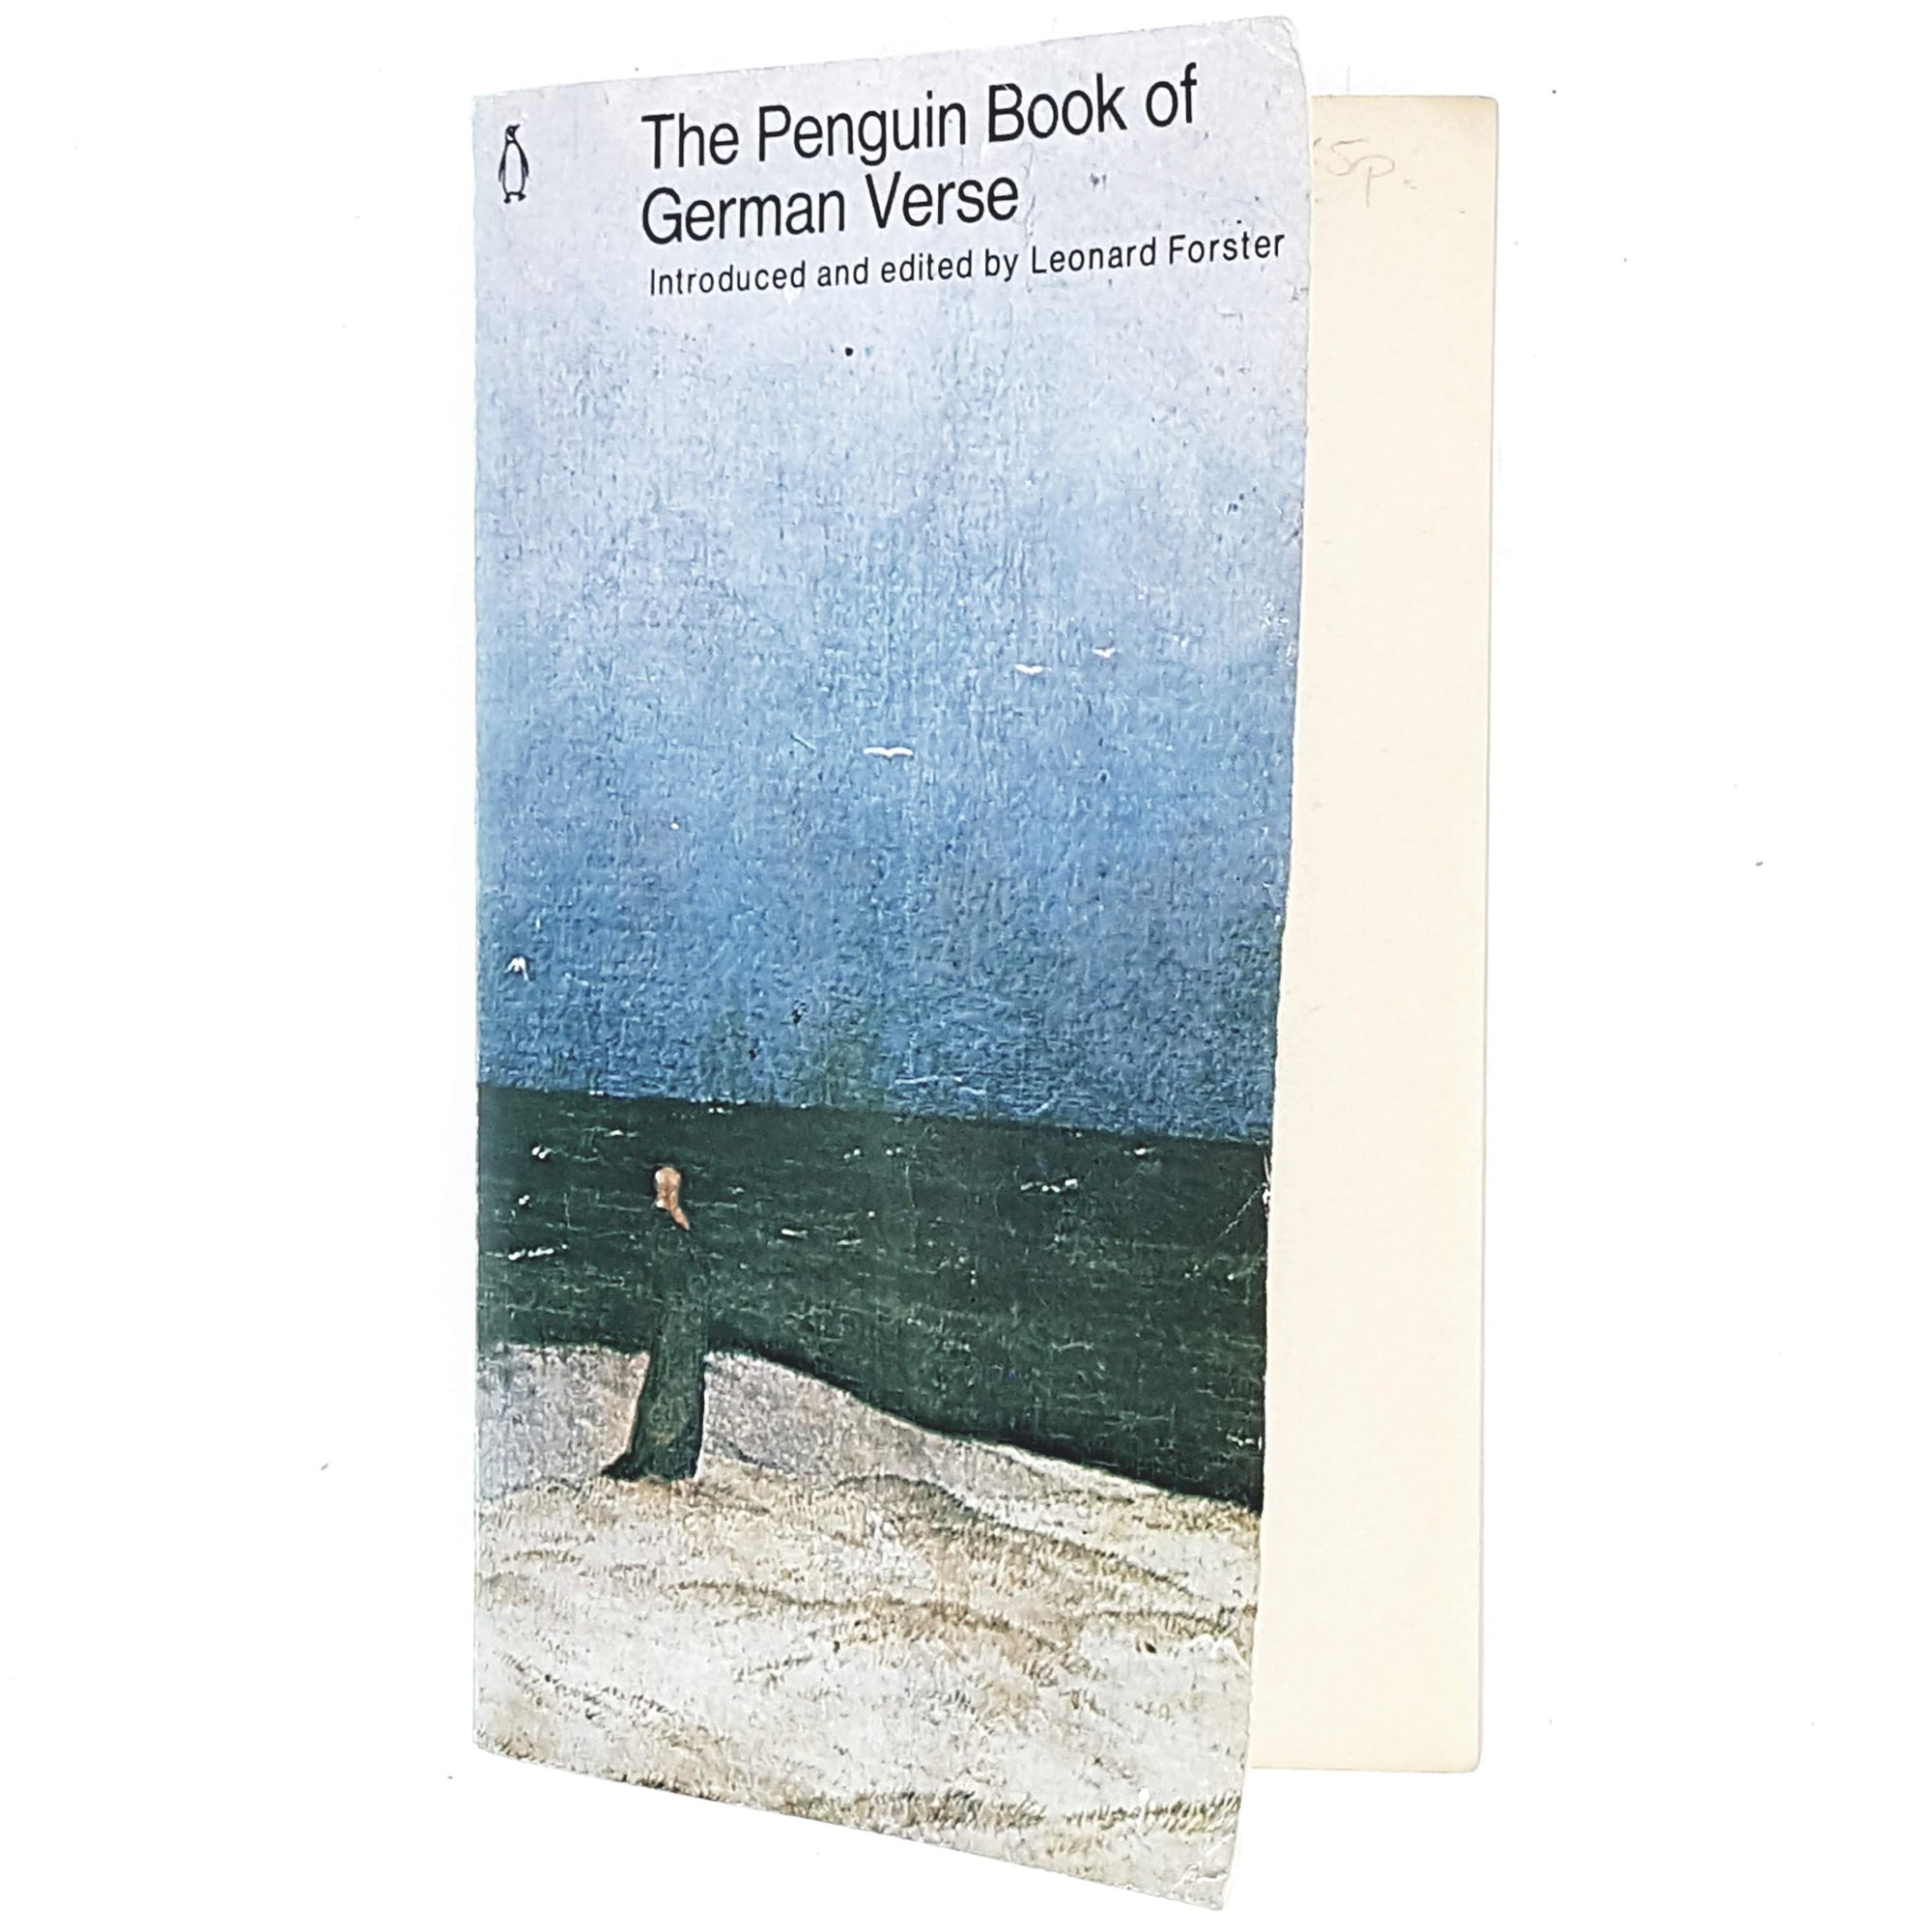 The Penguin Book of German Verse 1978